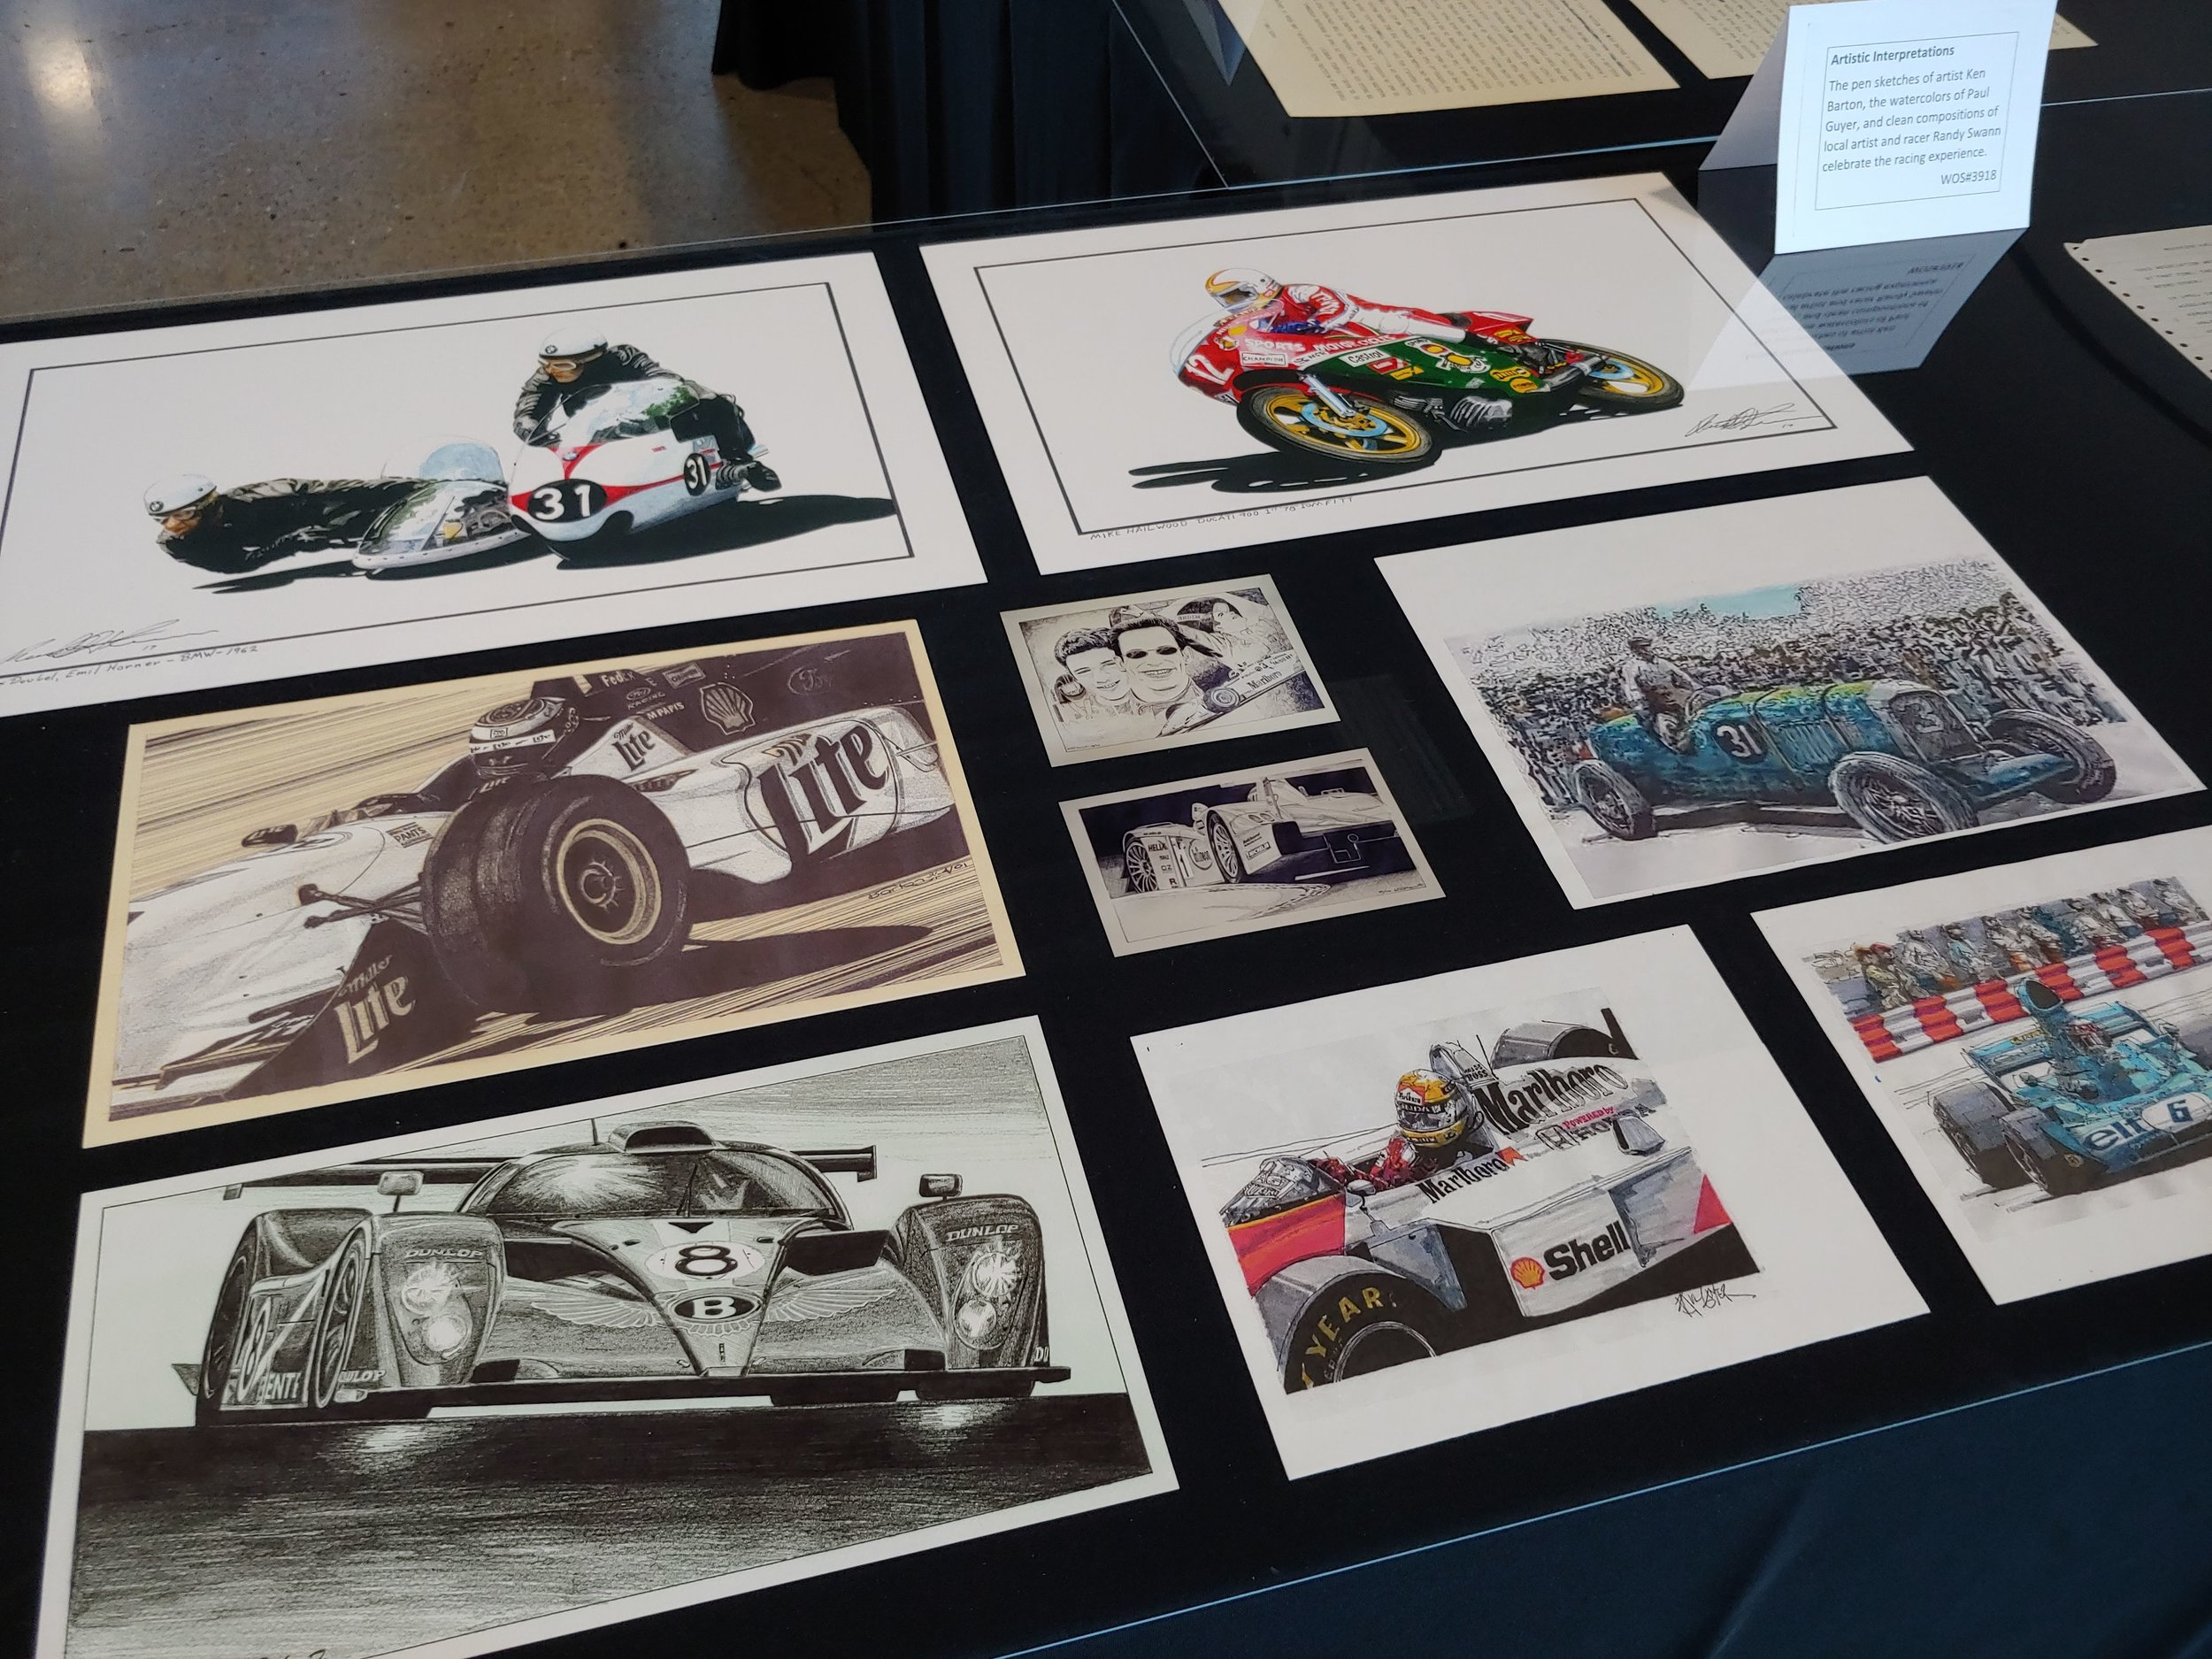 Artistic Interpretations   The pen sketches of artist Ken Barton, the watercolors of Paul Guyer, and clean compositions of local artist and racer Randy Swann celebrate the racing experience.  WOS#3918, #3455, #3454